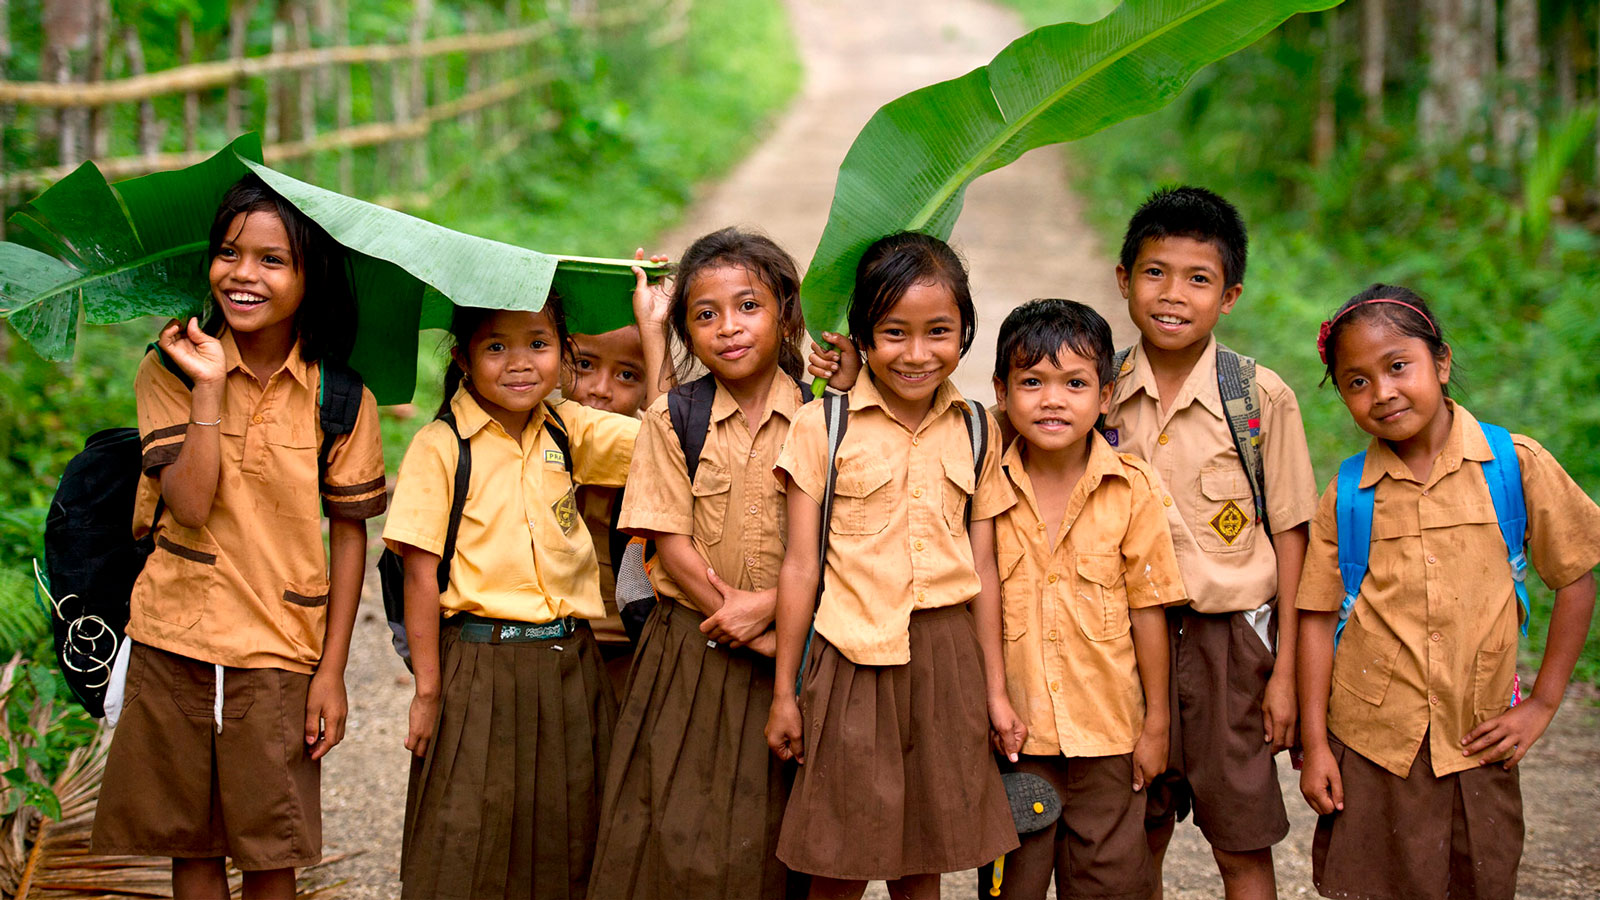 indonesia-sumba-island-school-children